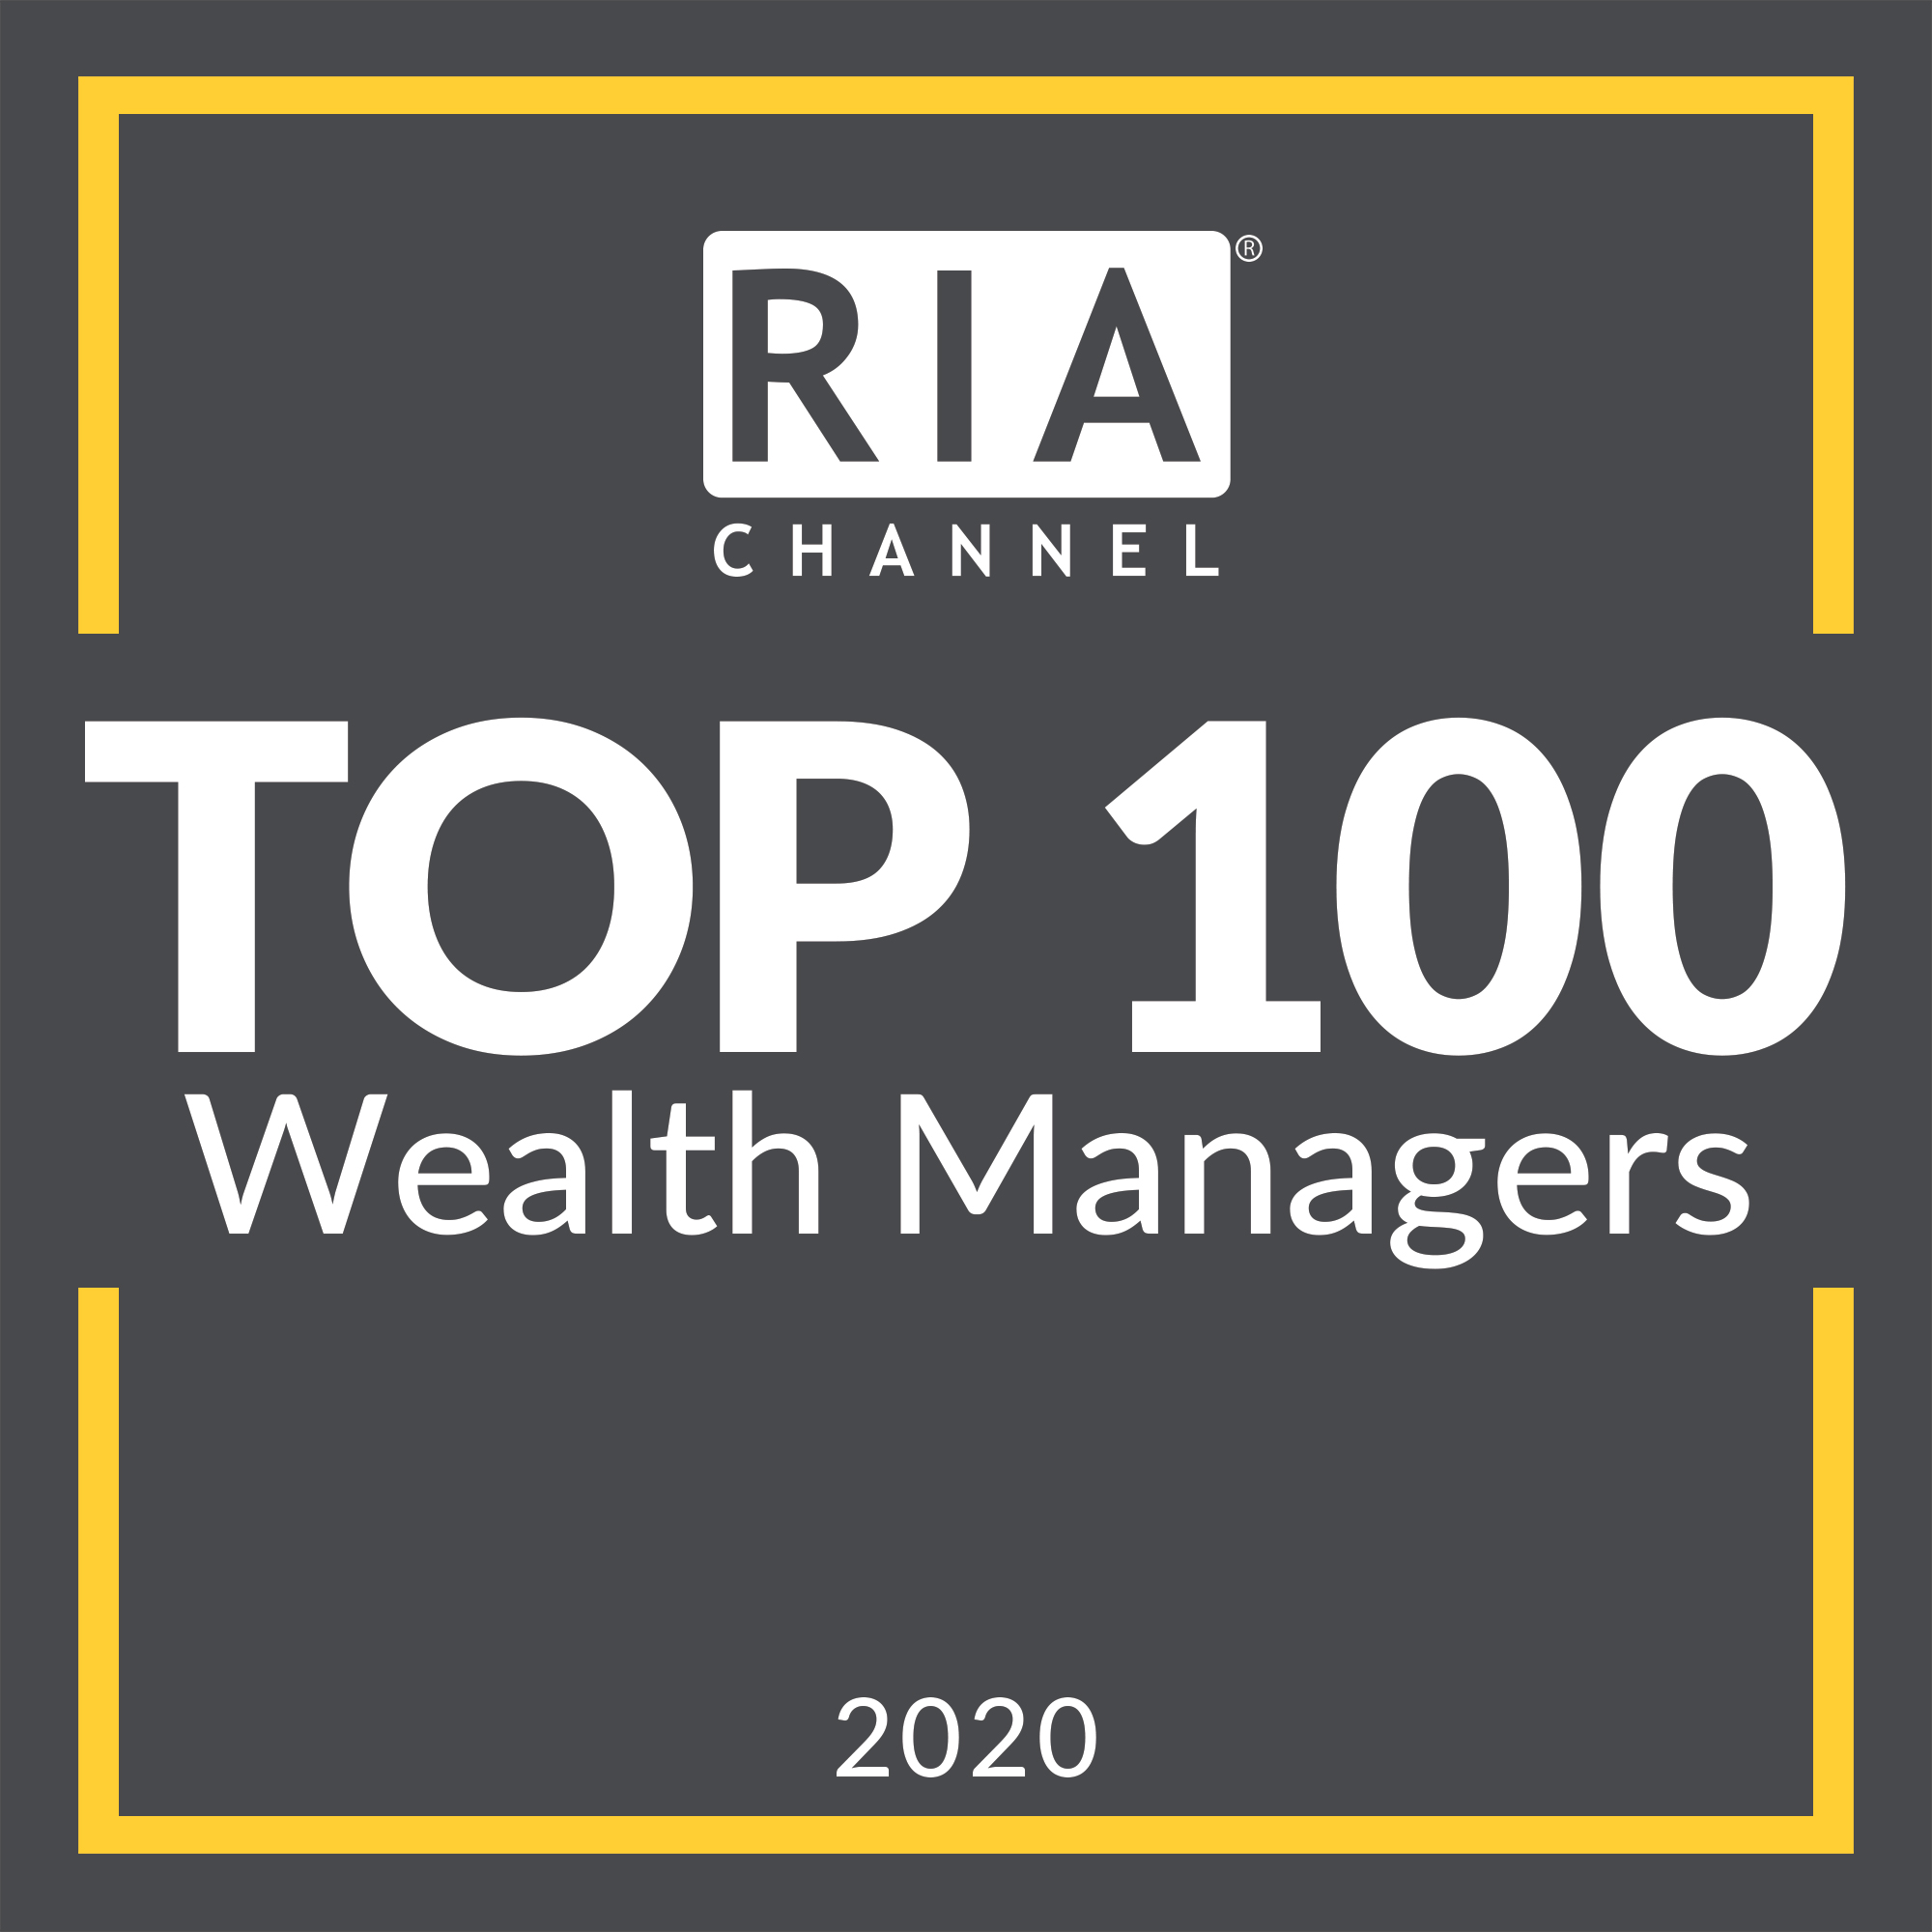 Plancorp Top 100 Wealth Manager Ranking 2020